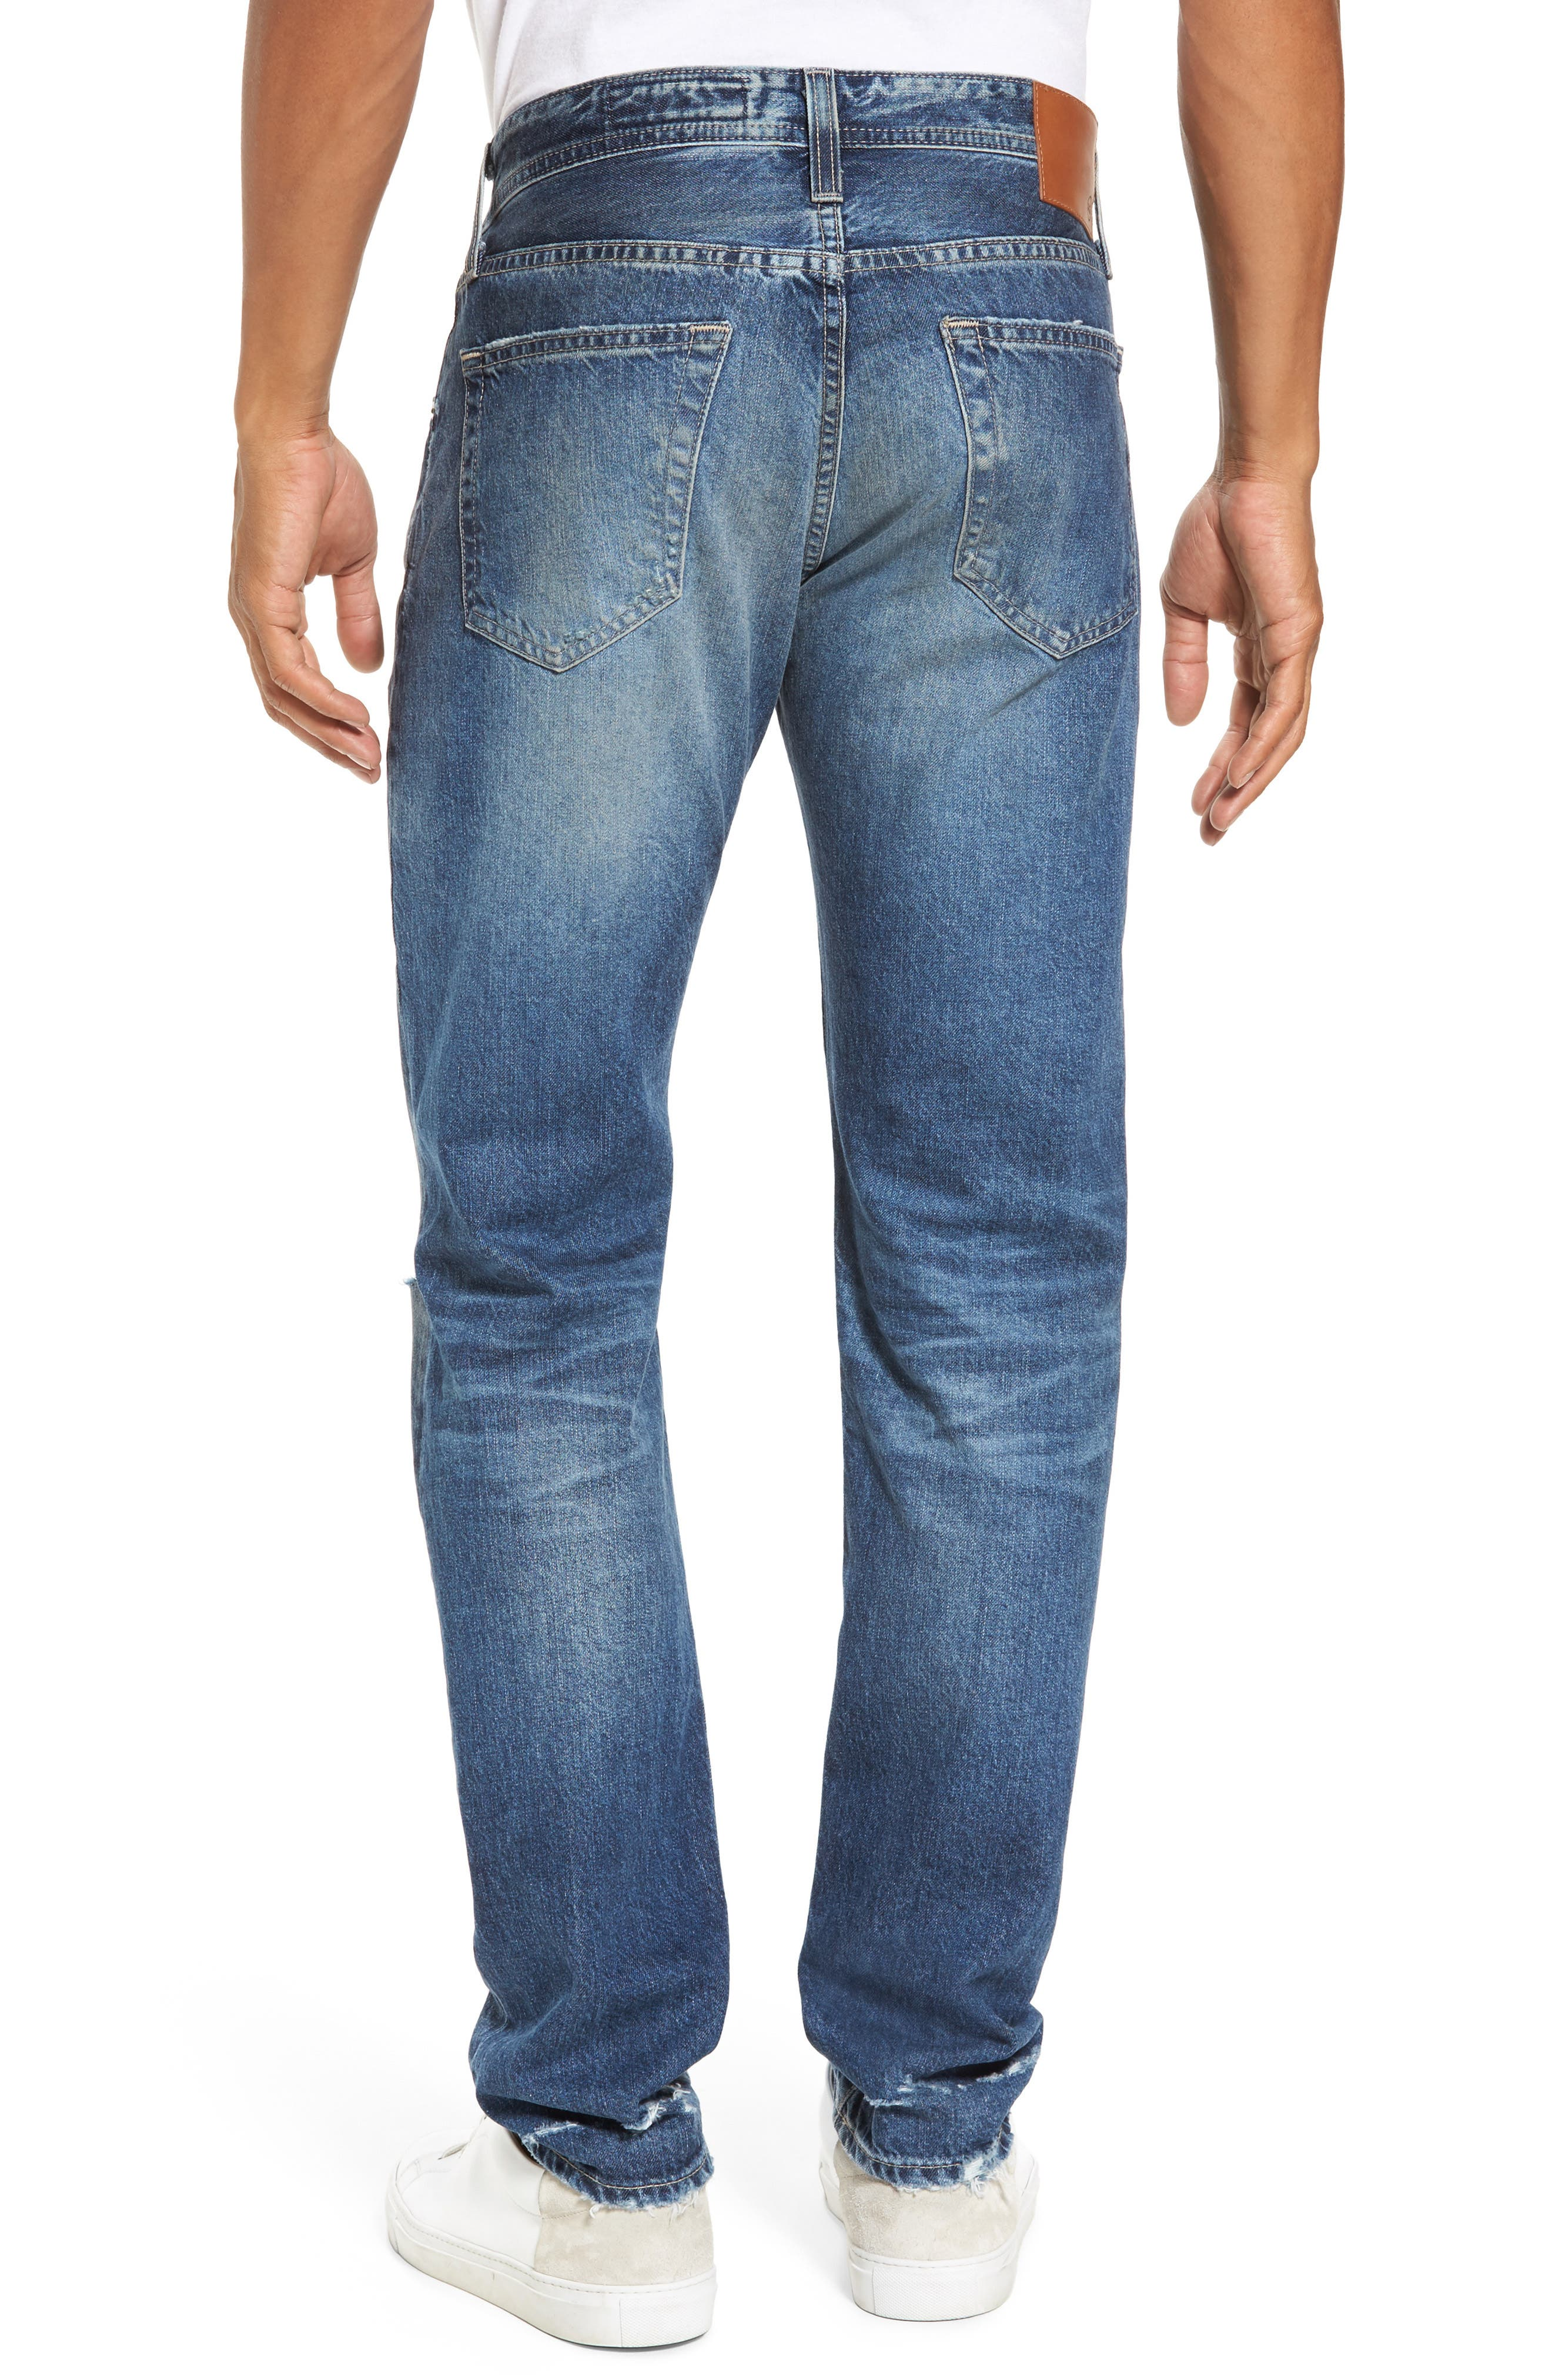 Tellis Slim Fit Jeans,                             Alternate thumbnail 2, color,                             20 Years Grunge